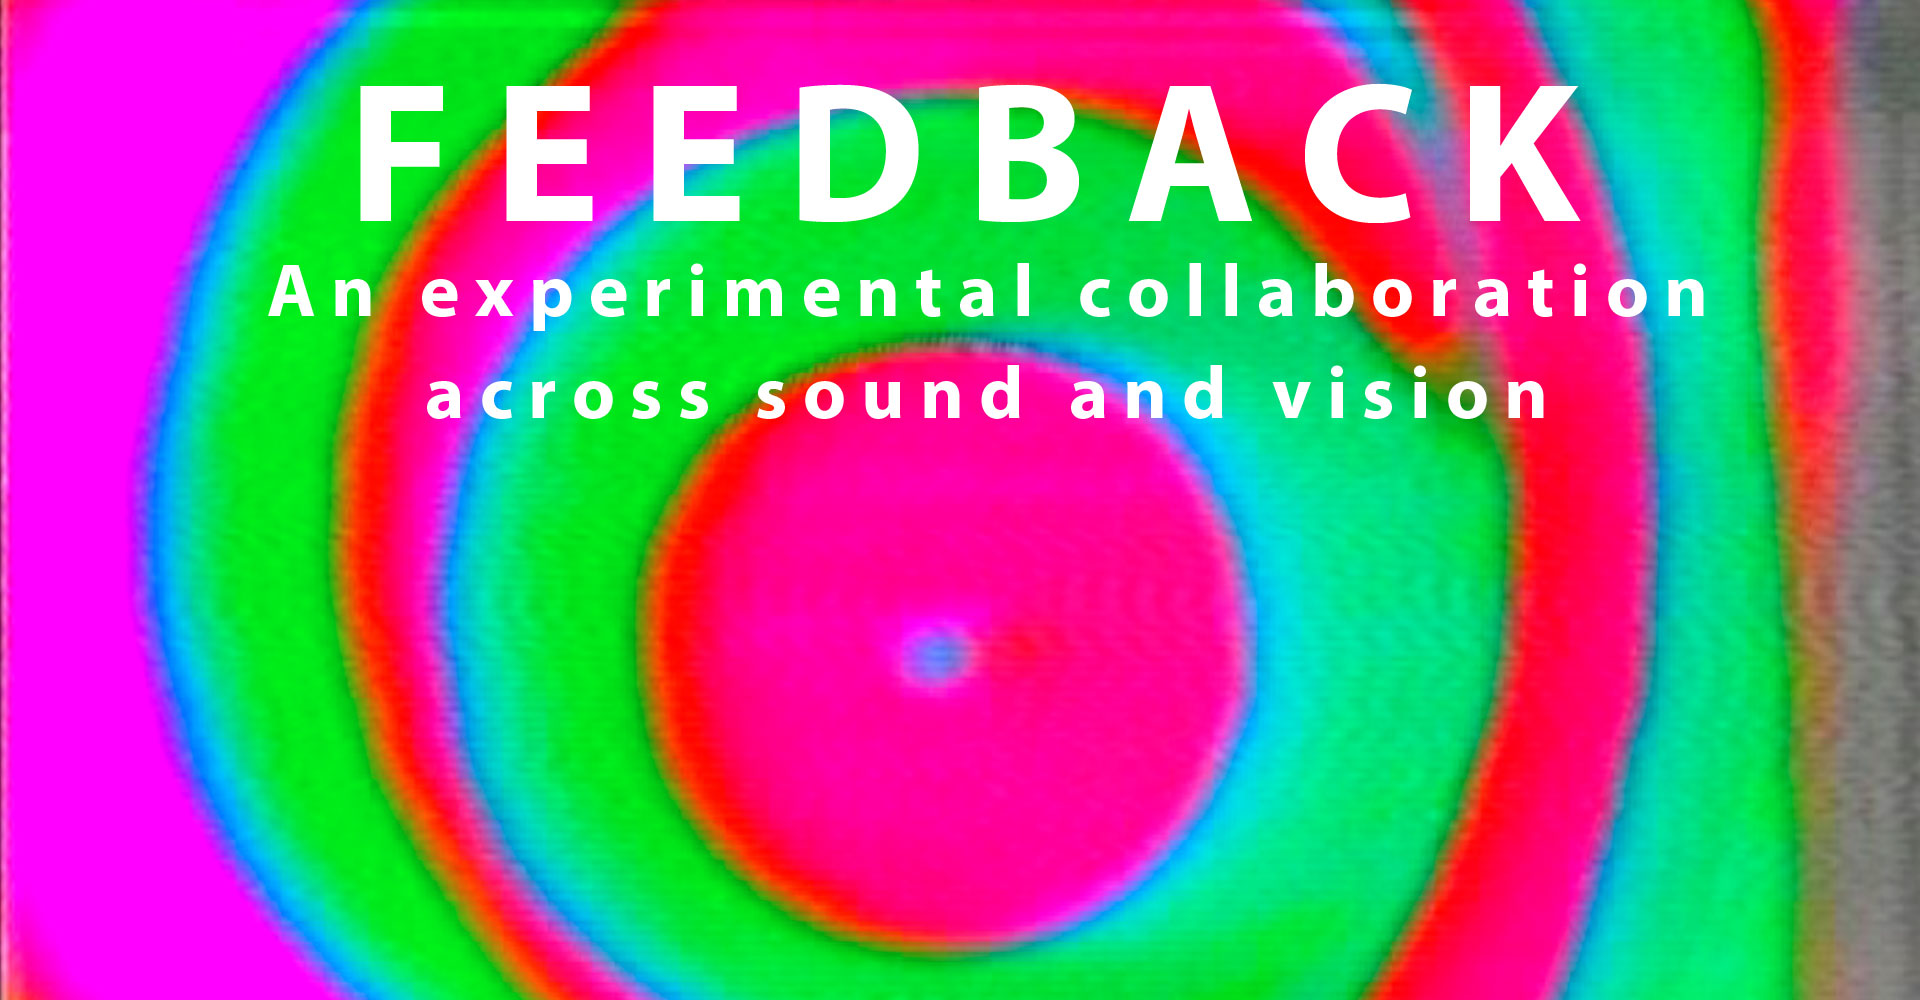 FEEDBACK: An experimental collaboration across sound and vision - Information & Cultural Exchange